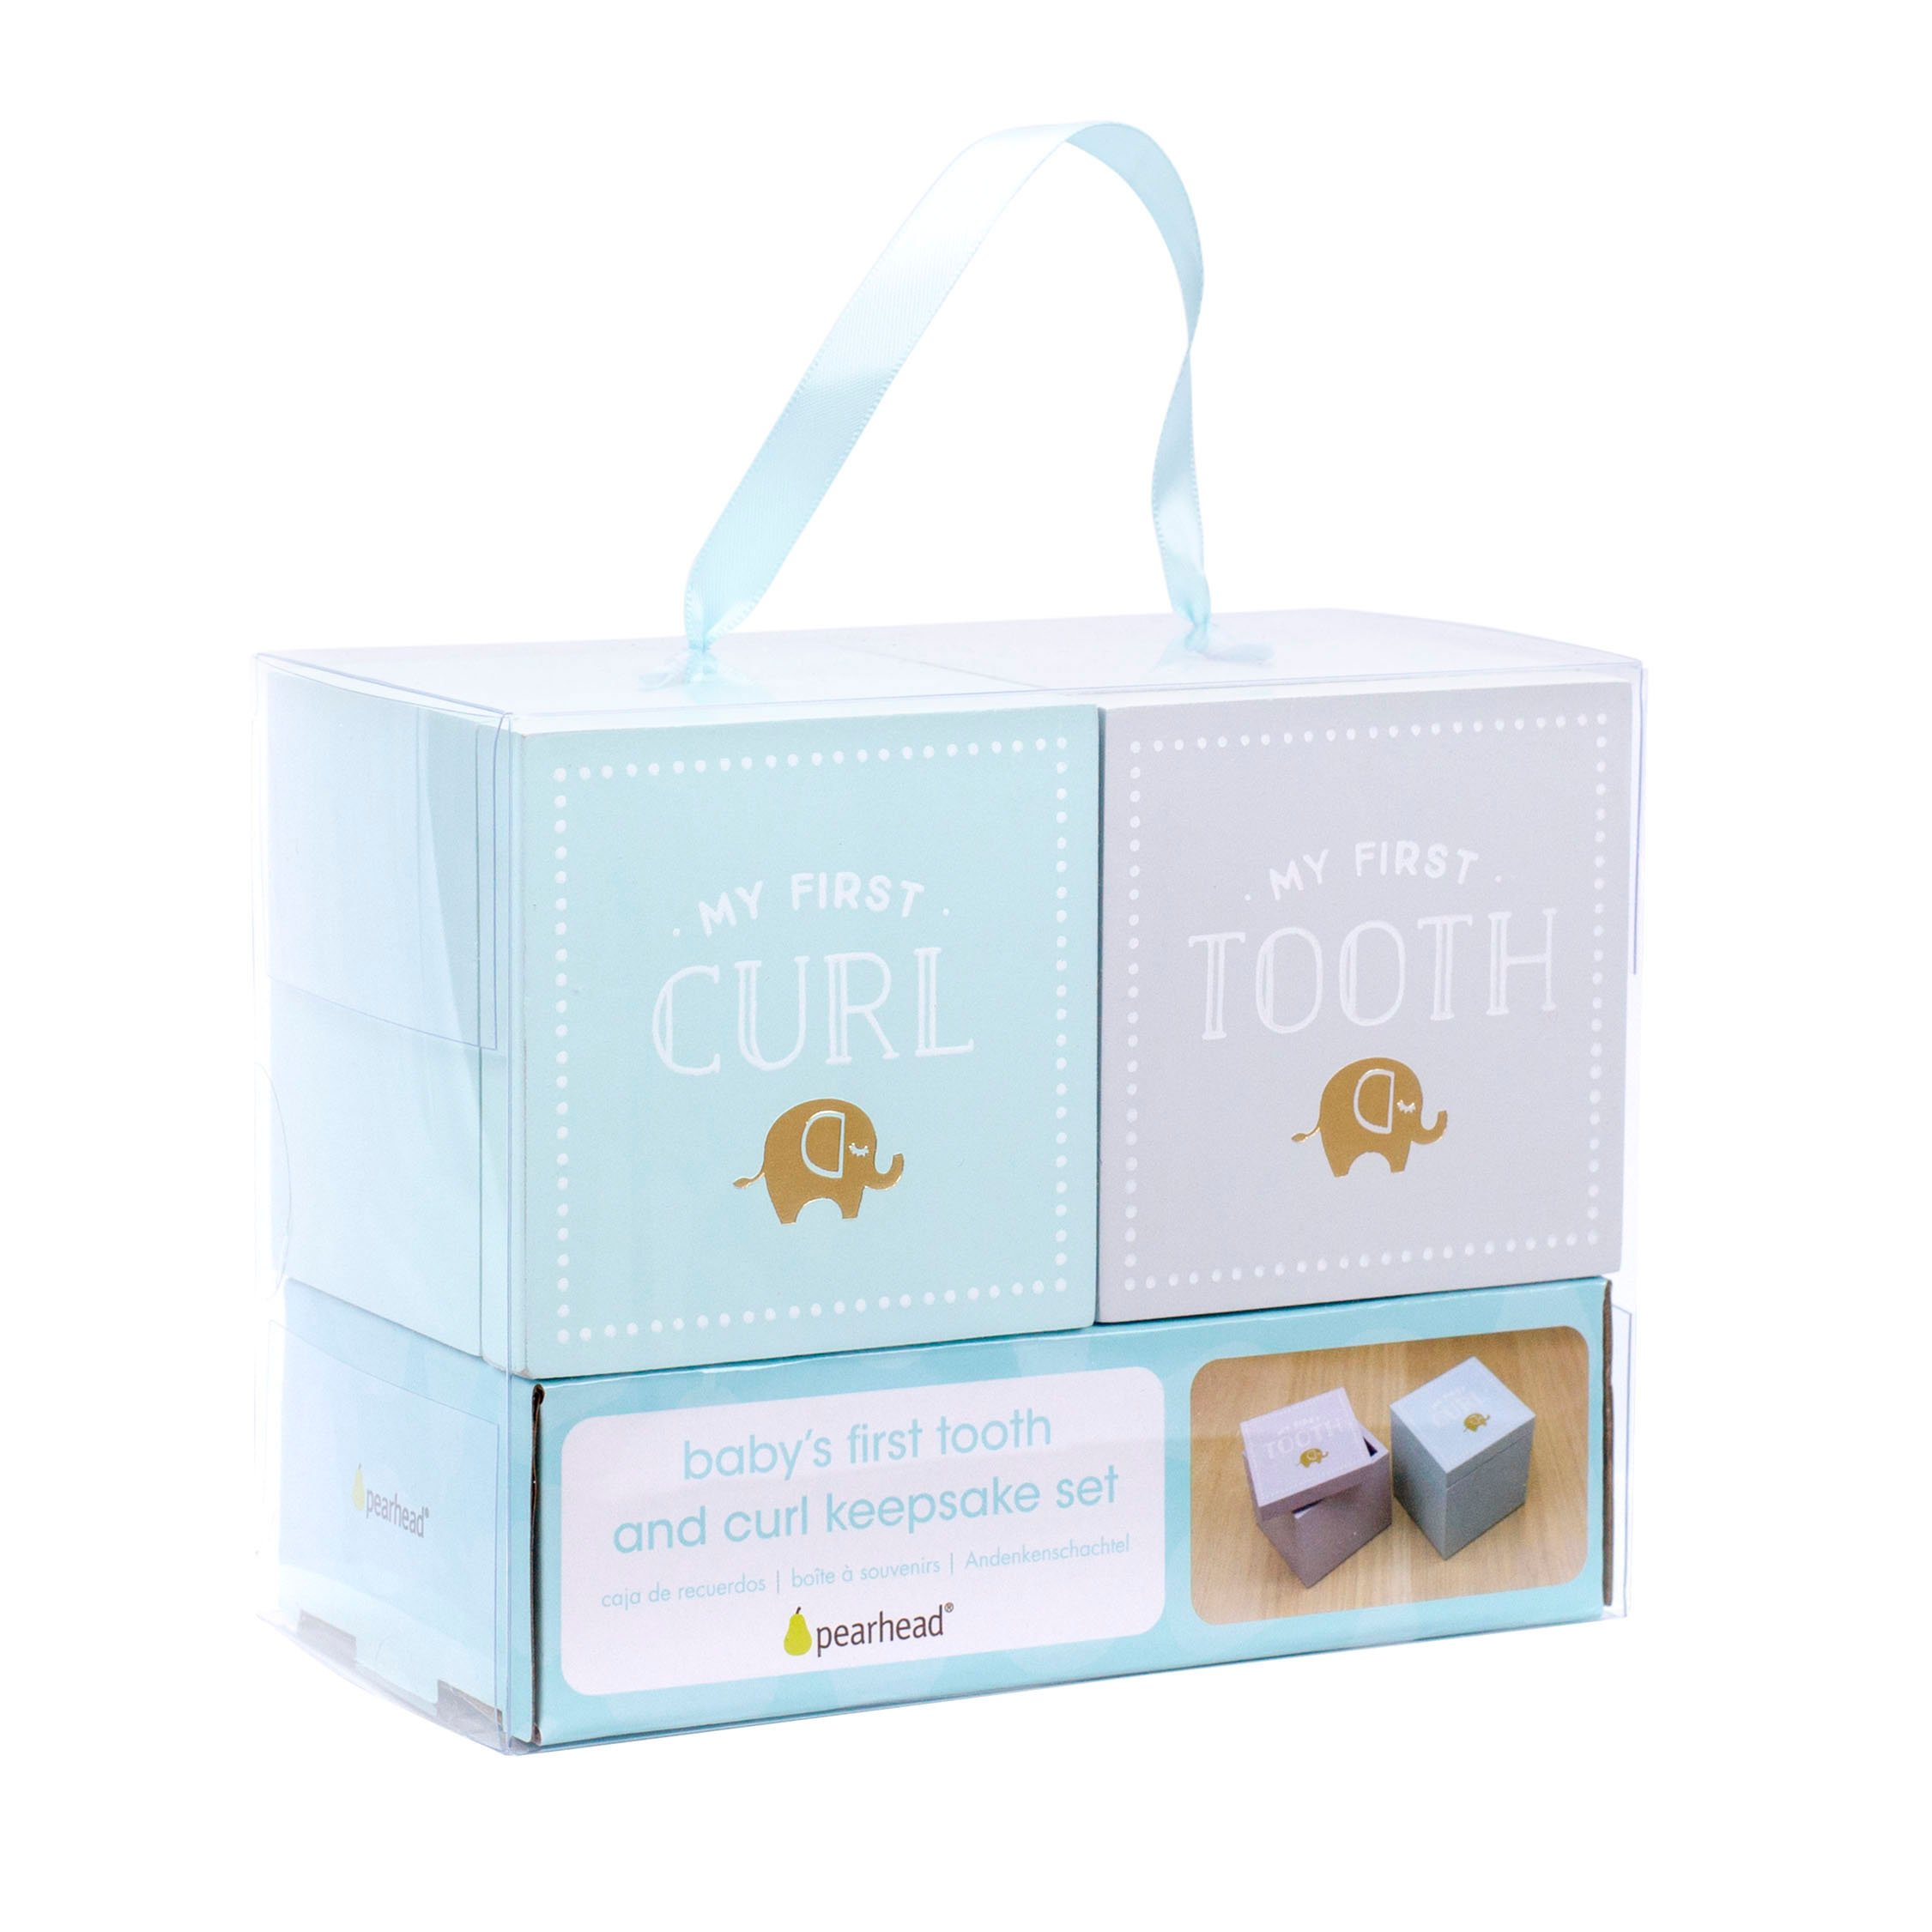 Pearhead Baby's First Tooth and Curl Wooden Keepsake Box Set, Mint/Gray